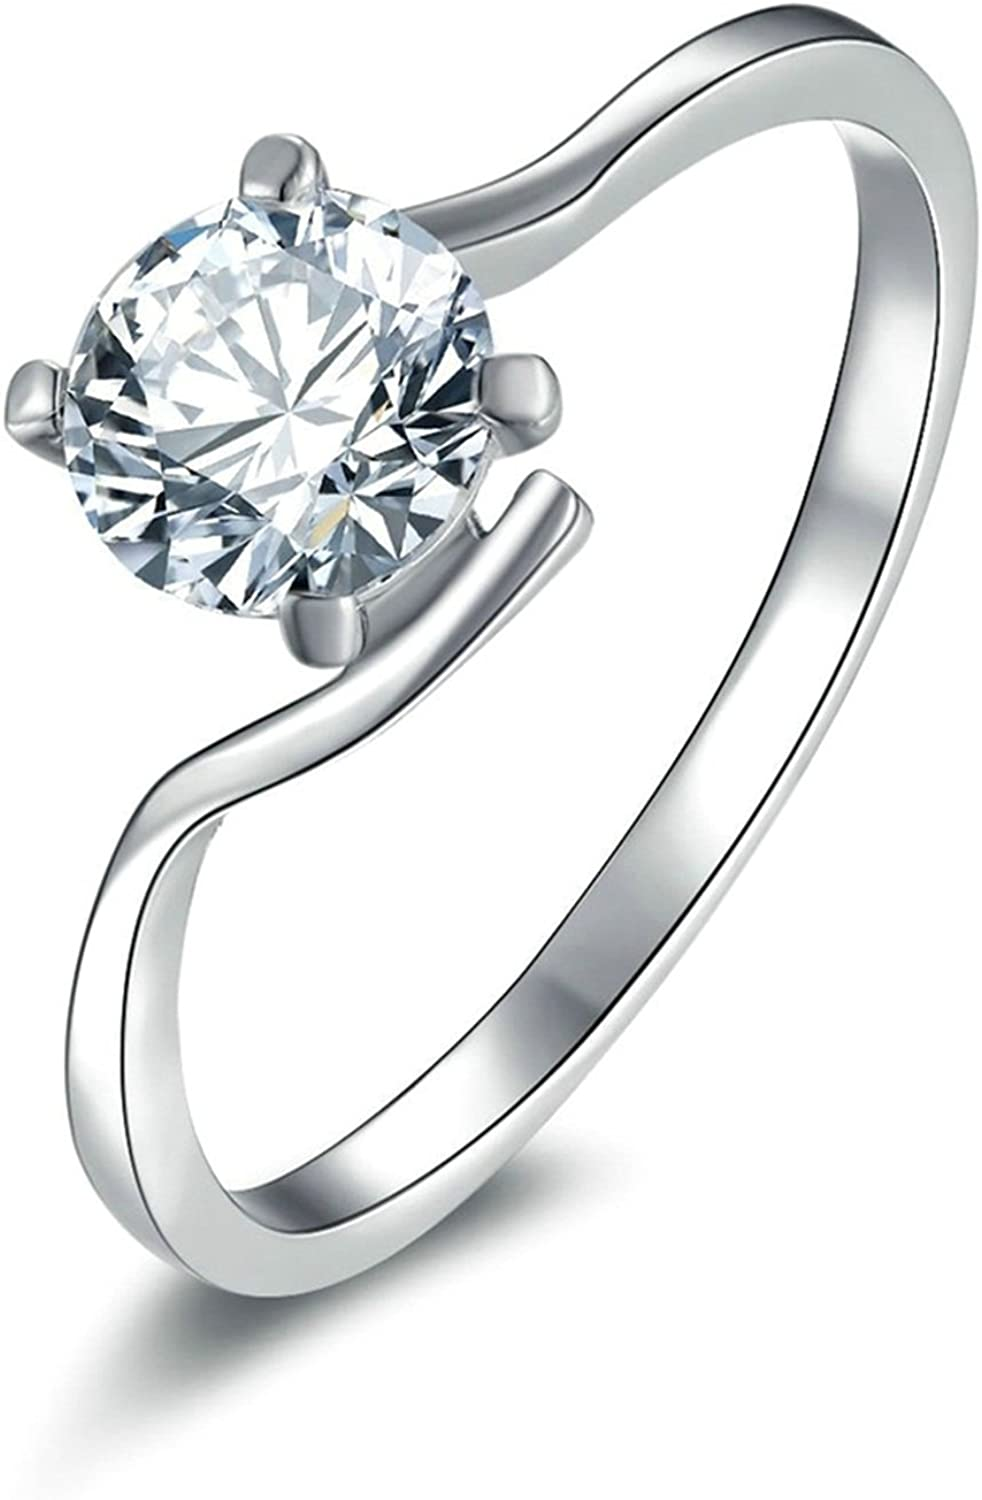 Aokarry Ladies Jewelry 925 Sterling Silver Personalized Rings for Women 4 Prong Setting Round Cubic Zirconia Size 5-12